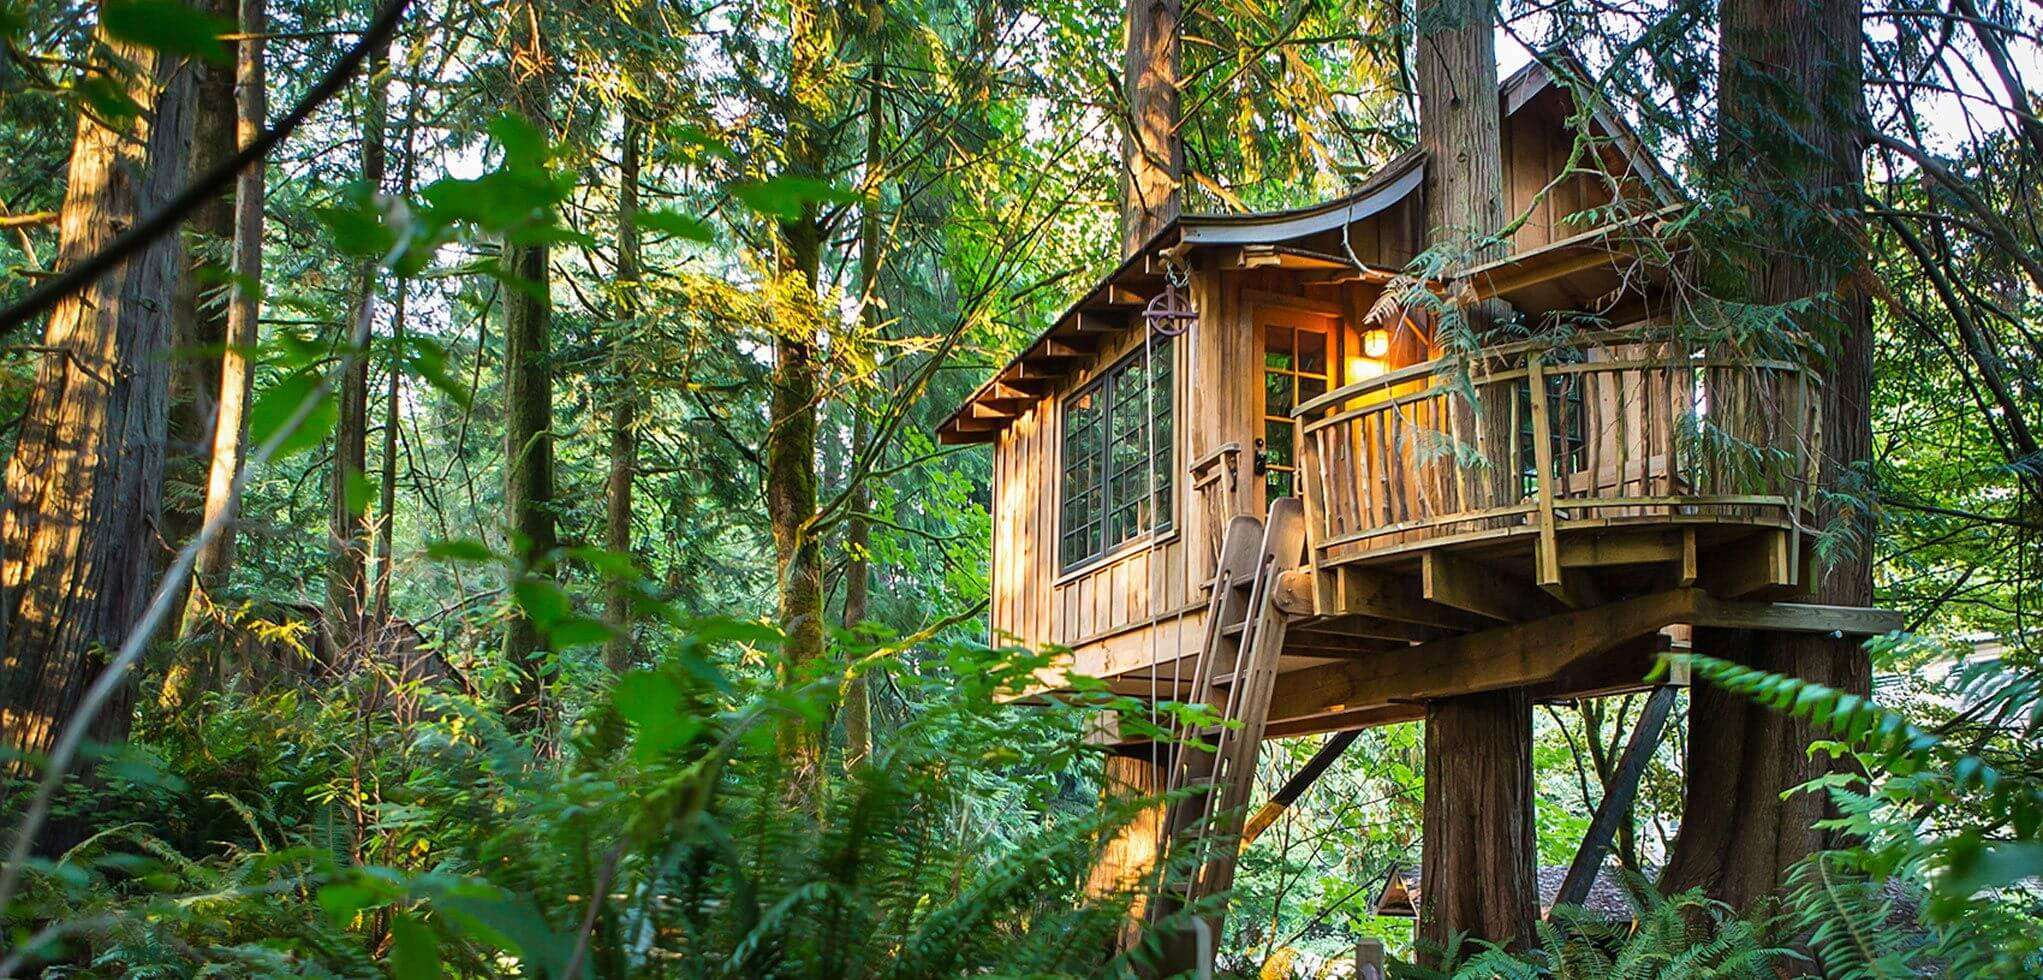 A front view of Treehouse Point in Issaquah in Washington